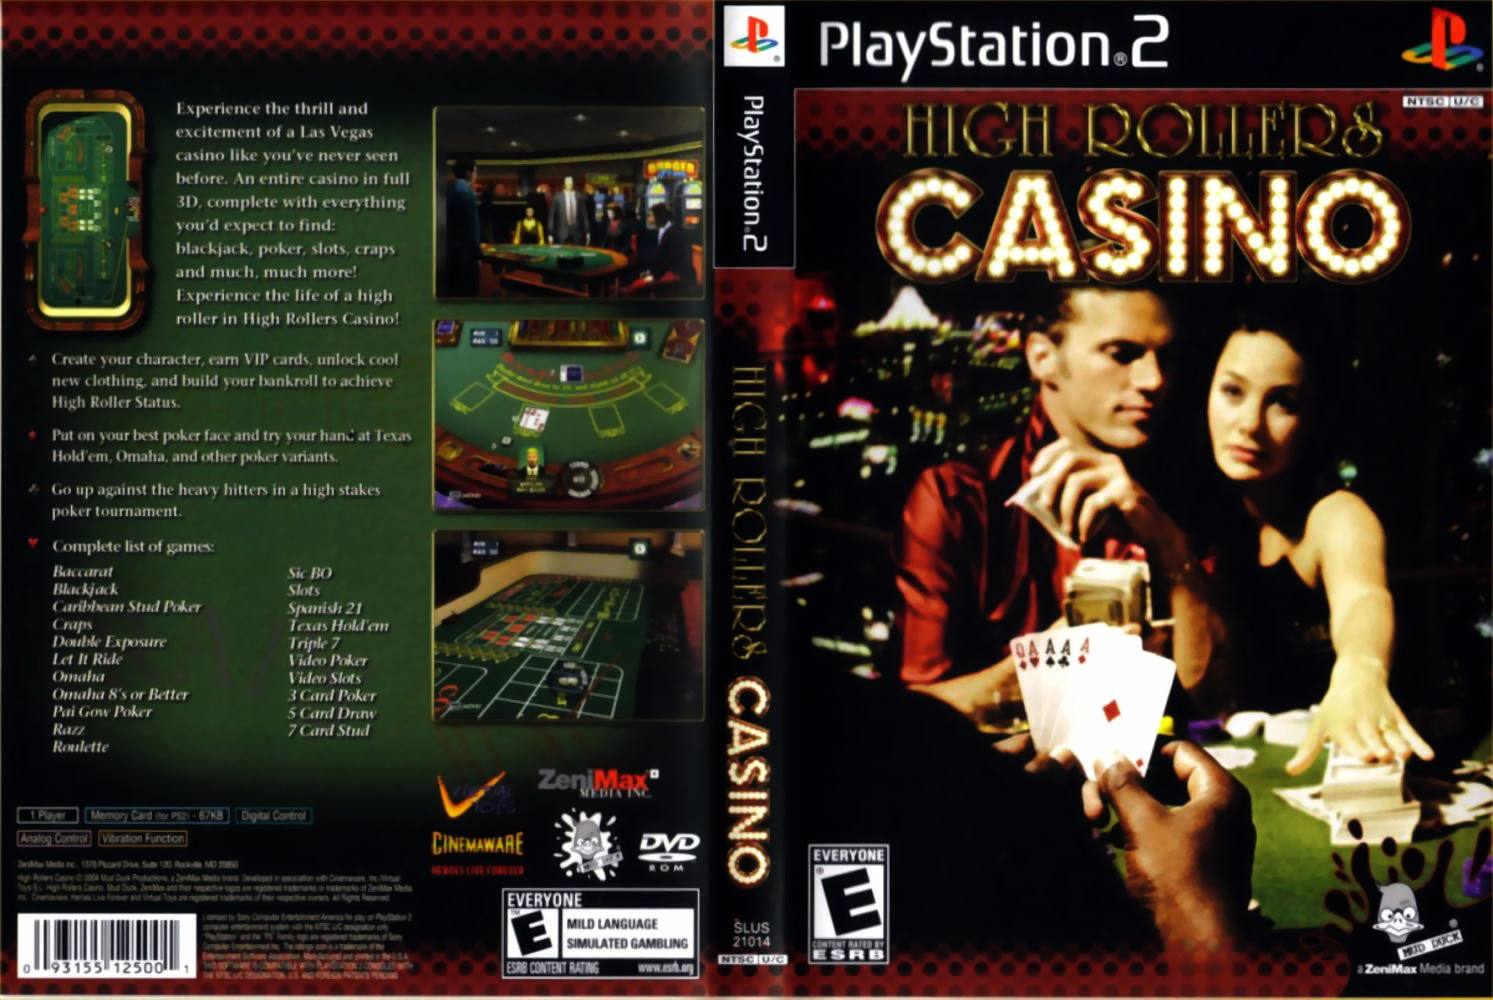 watch casino 1995 online free novo games online